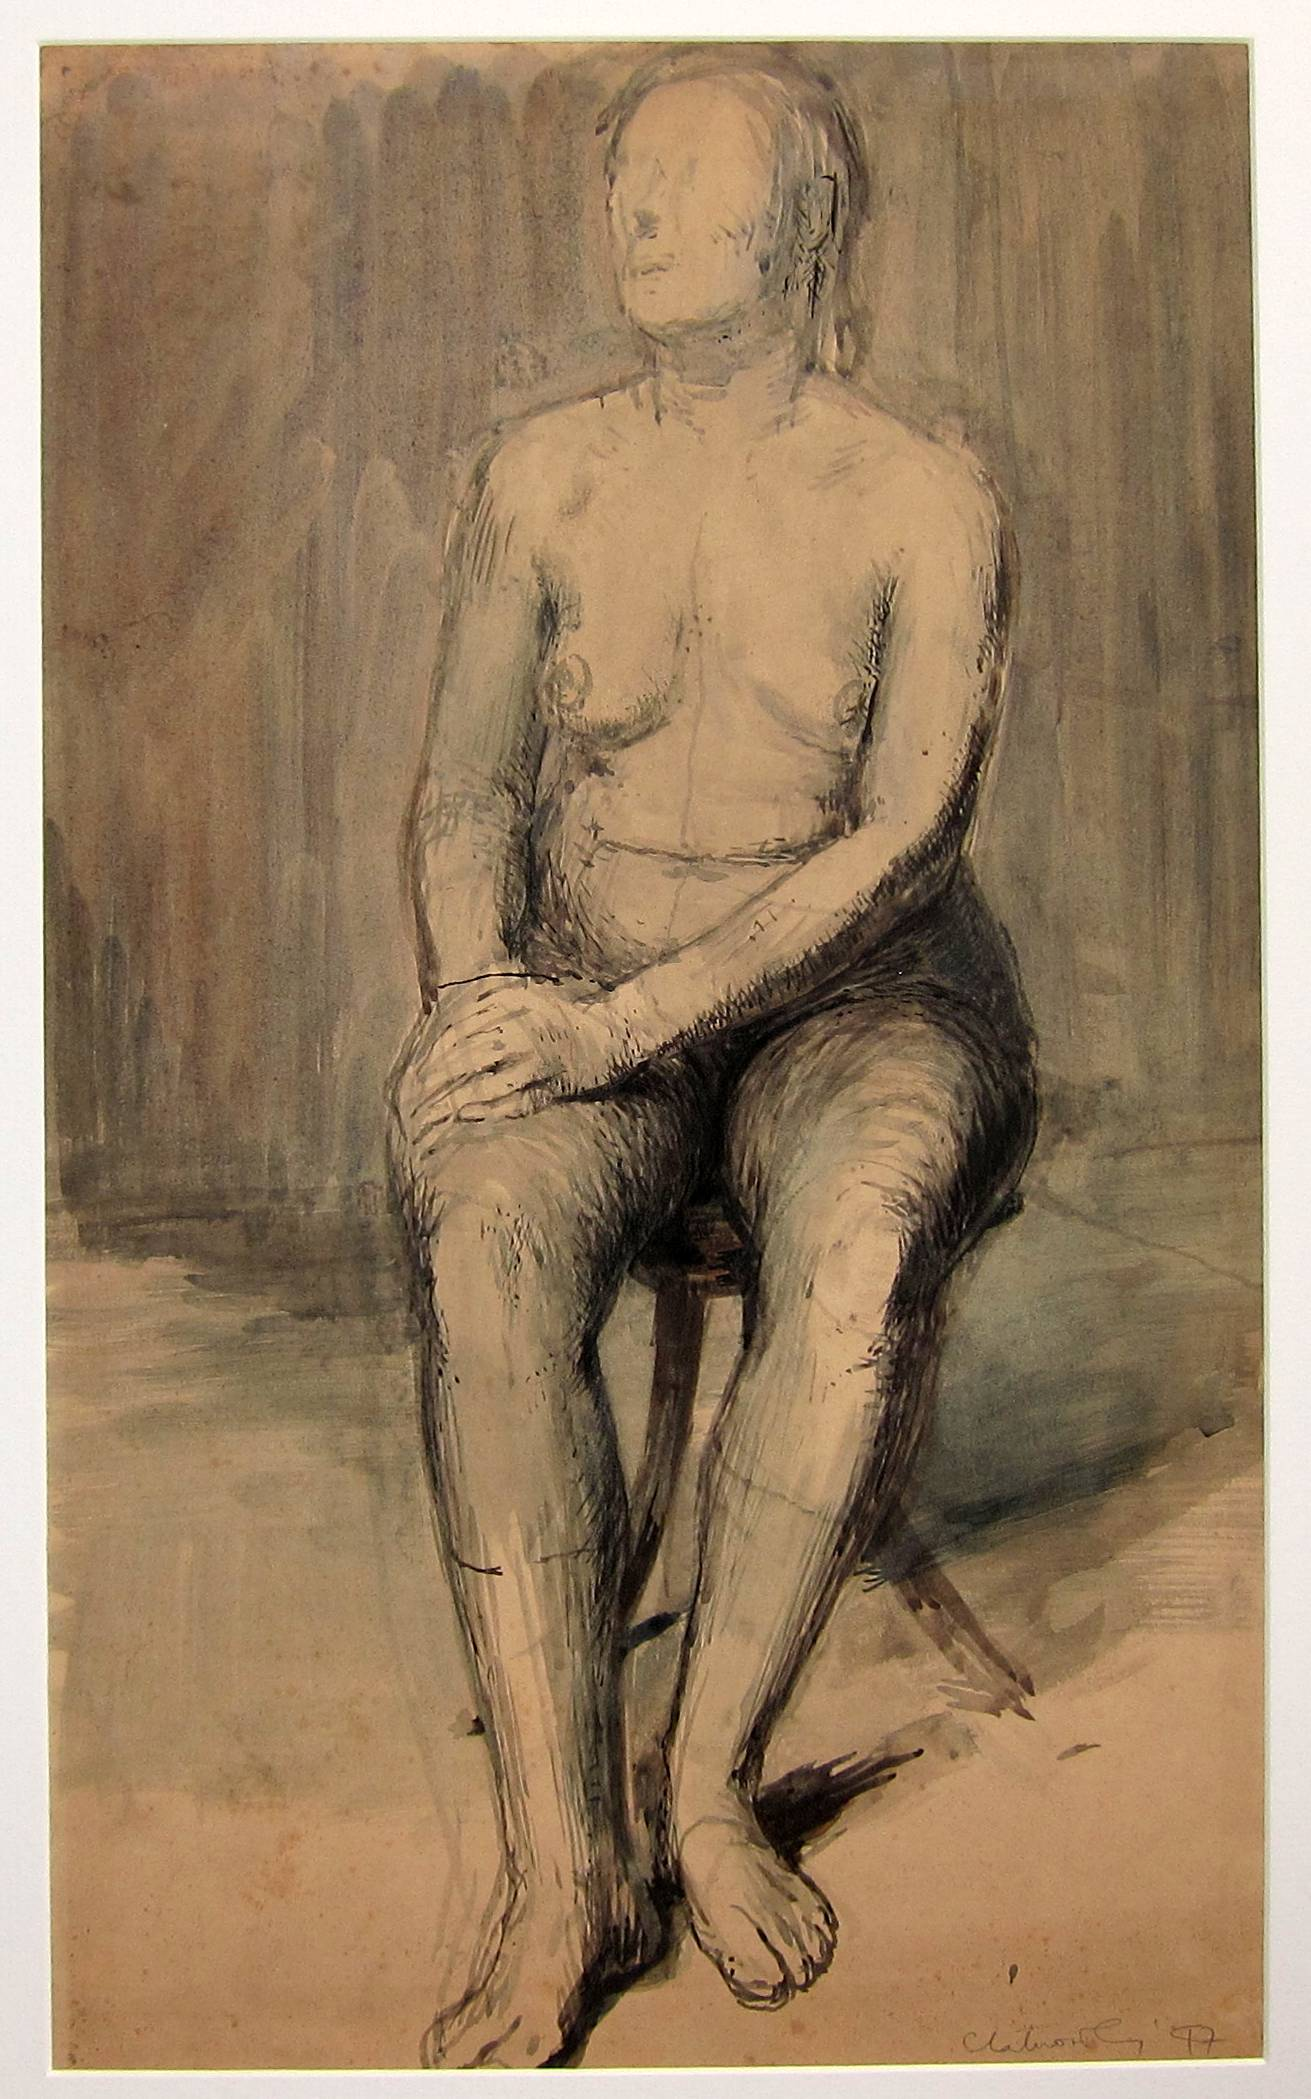 Lot 19 - ROBERT CLATWORTHY, R.A. [1928-2015]. Seated Nude, 1947. ink, wash and watercolour. signed and